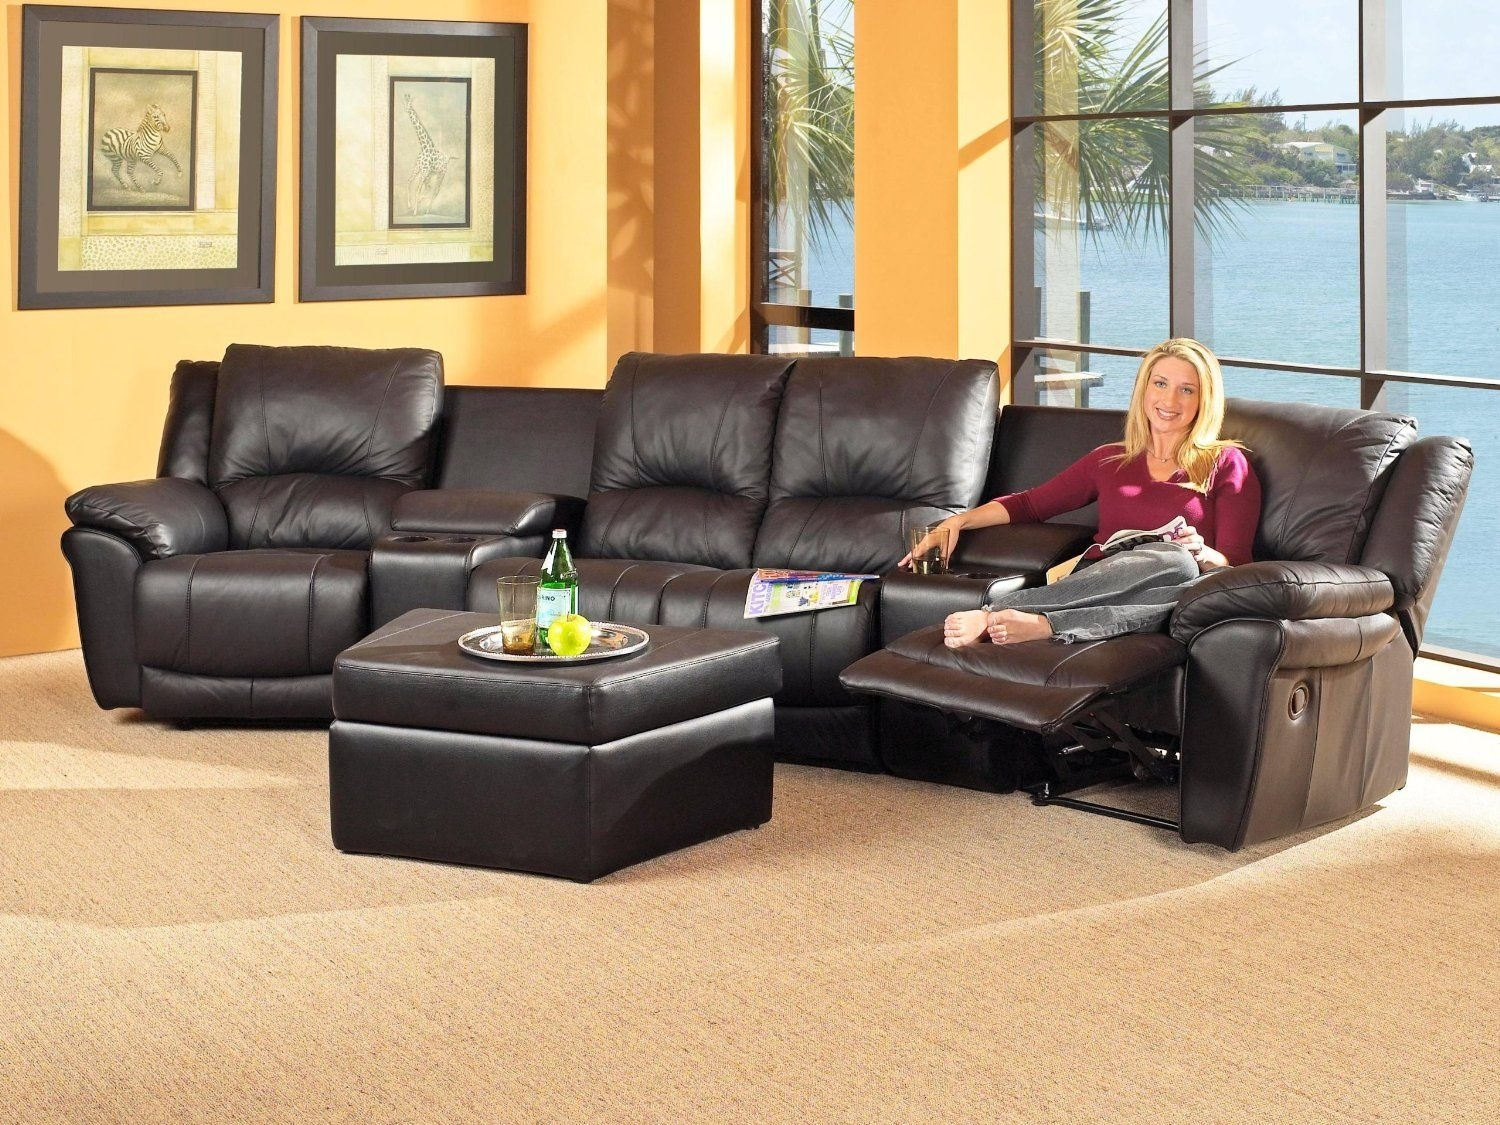 Sectional Sofas For Small Spaces | Leather Sectional Black Small With Regard To Sectional Sofas For Small Spaces (View 11 of 15)